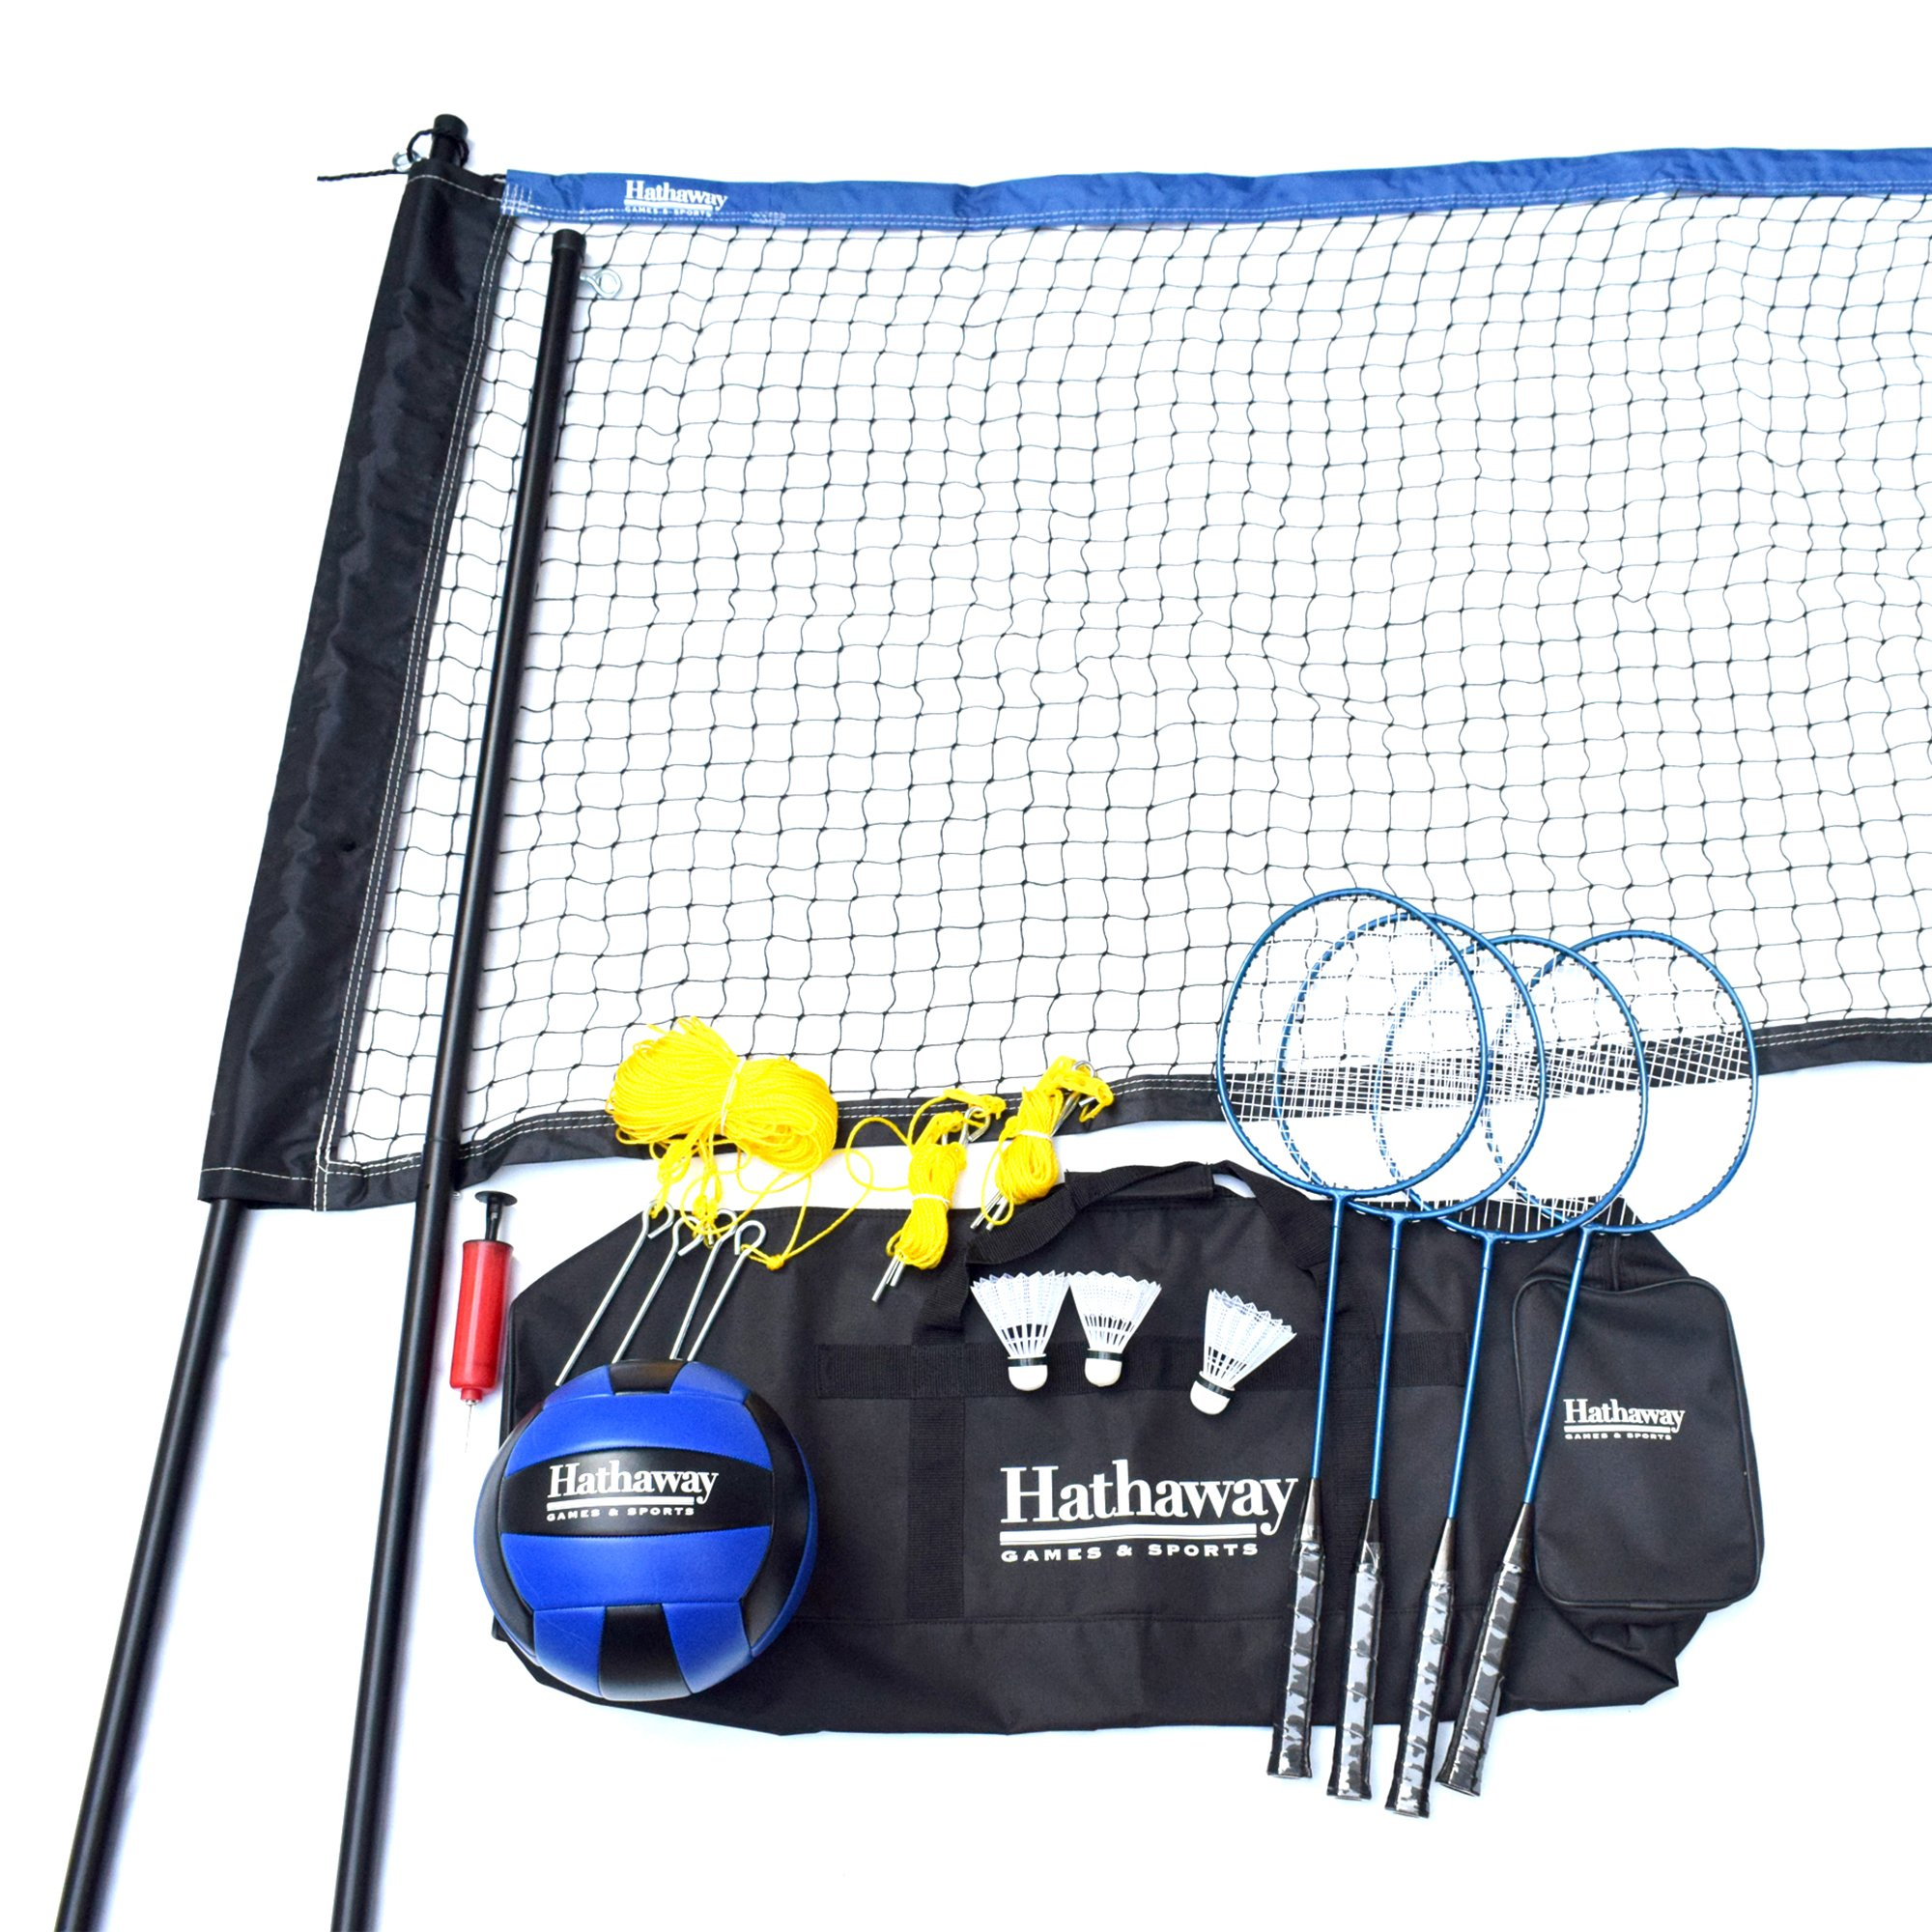 Hathaway Volleyball/Badminton Complete Combo Set